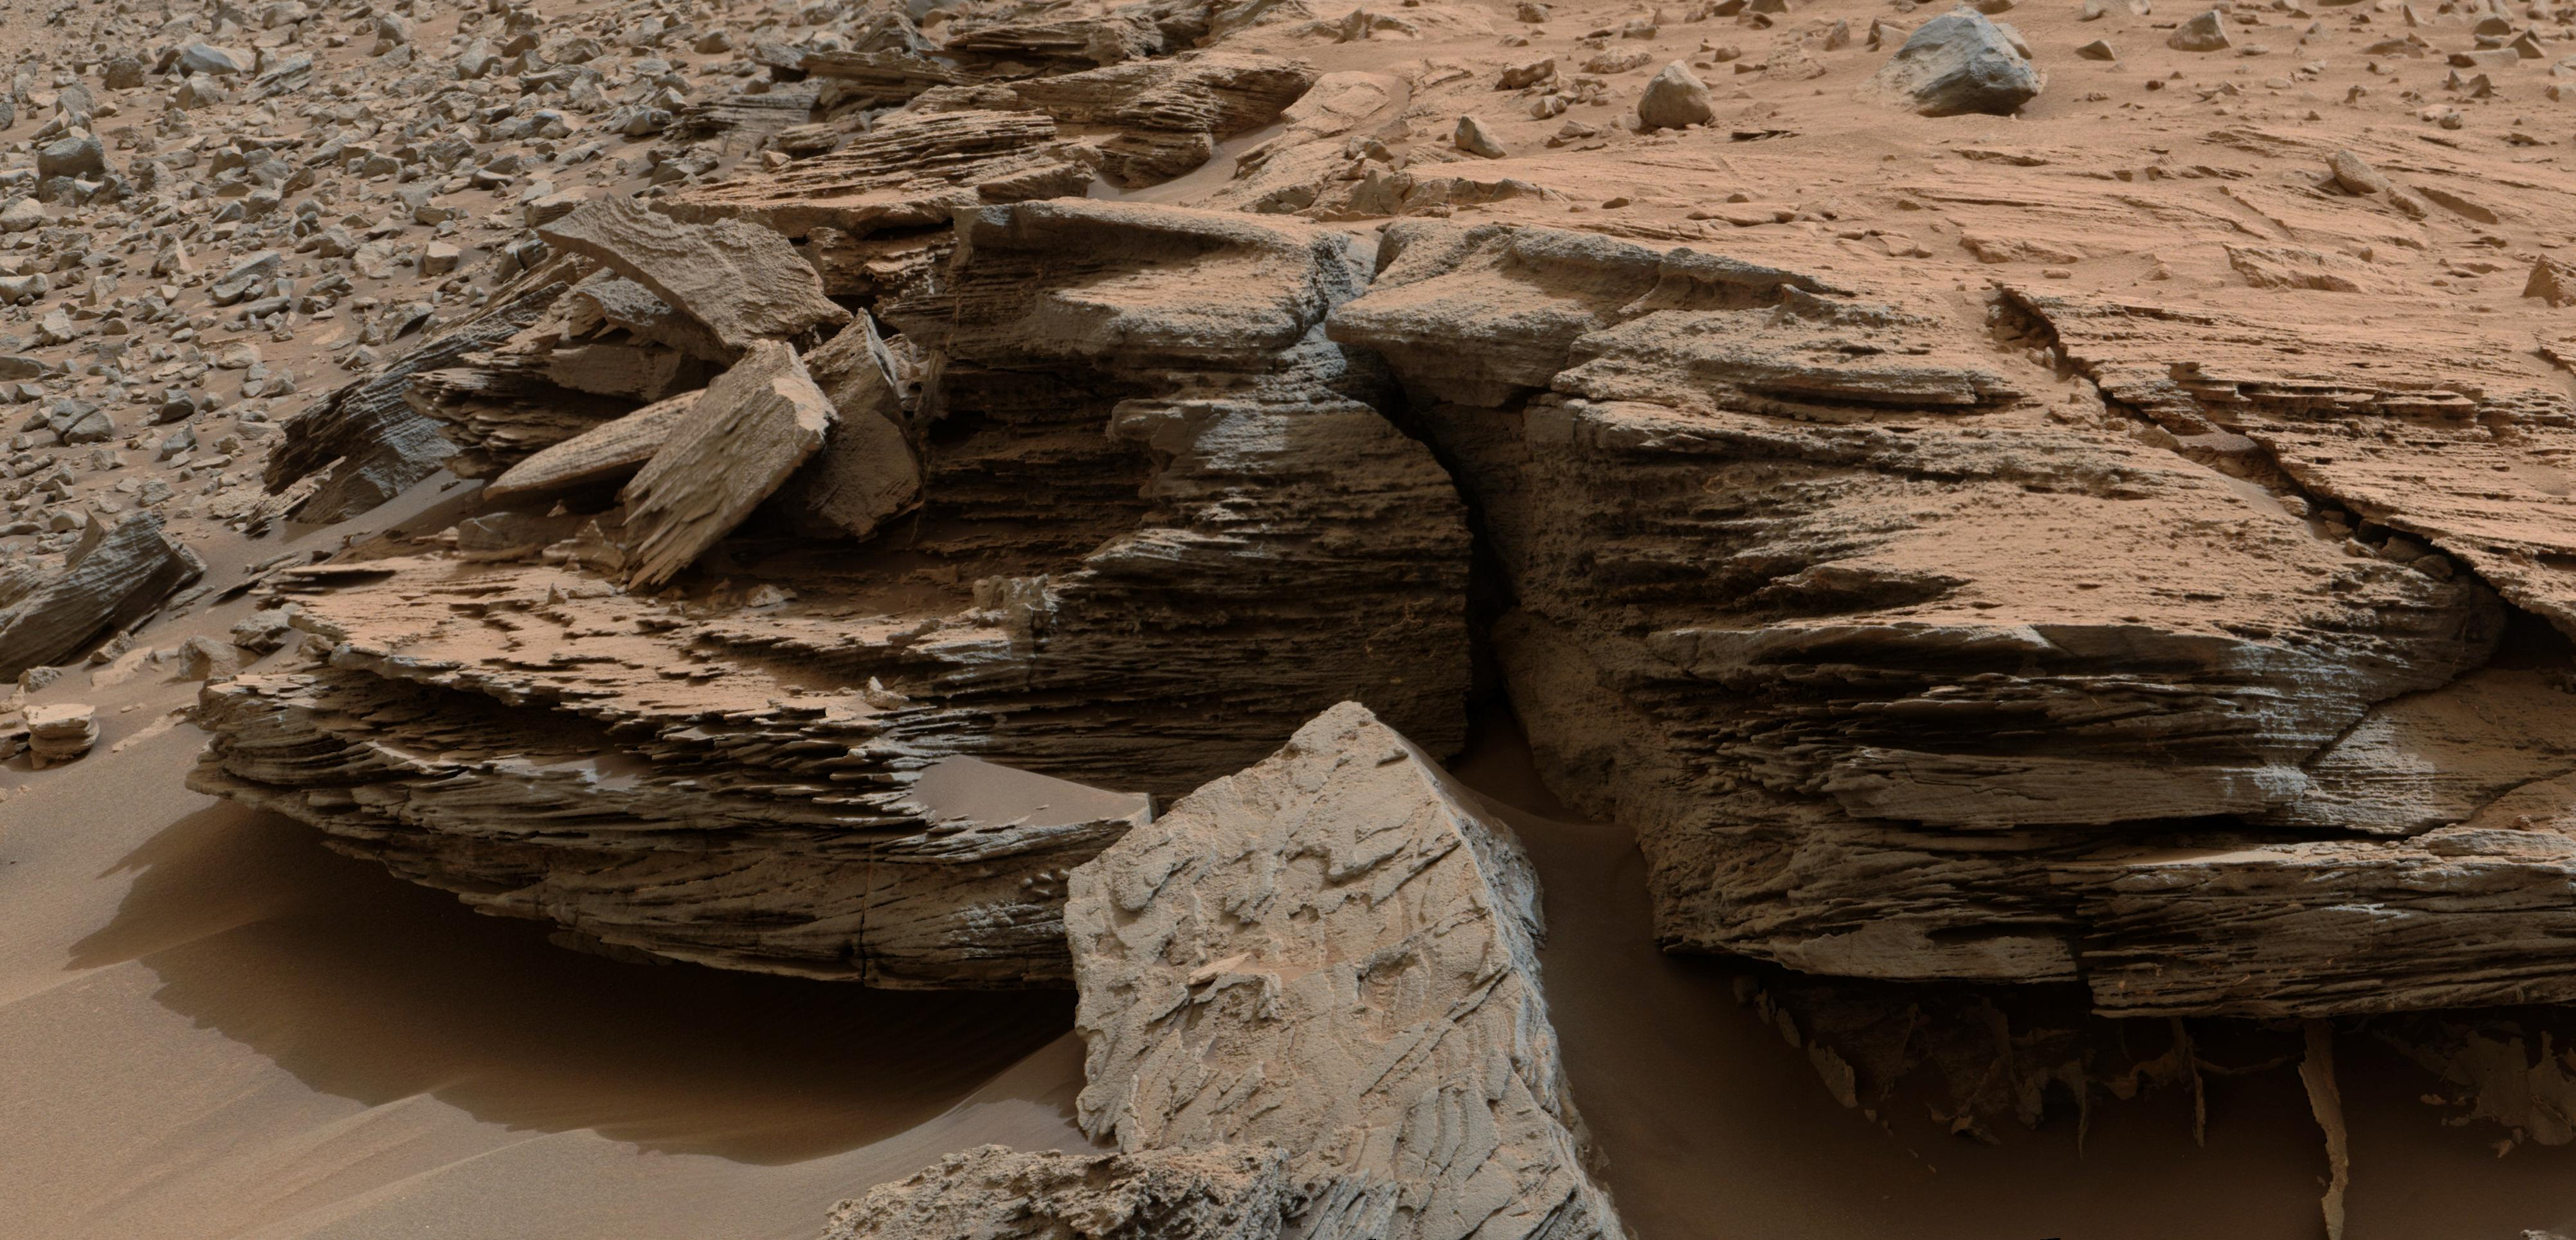 Curiosity Photo of 'Whale Rock' on Mars